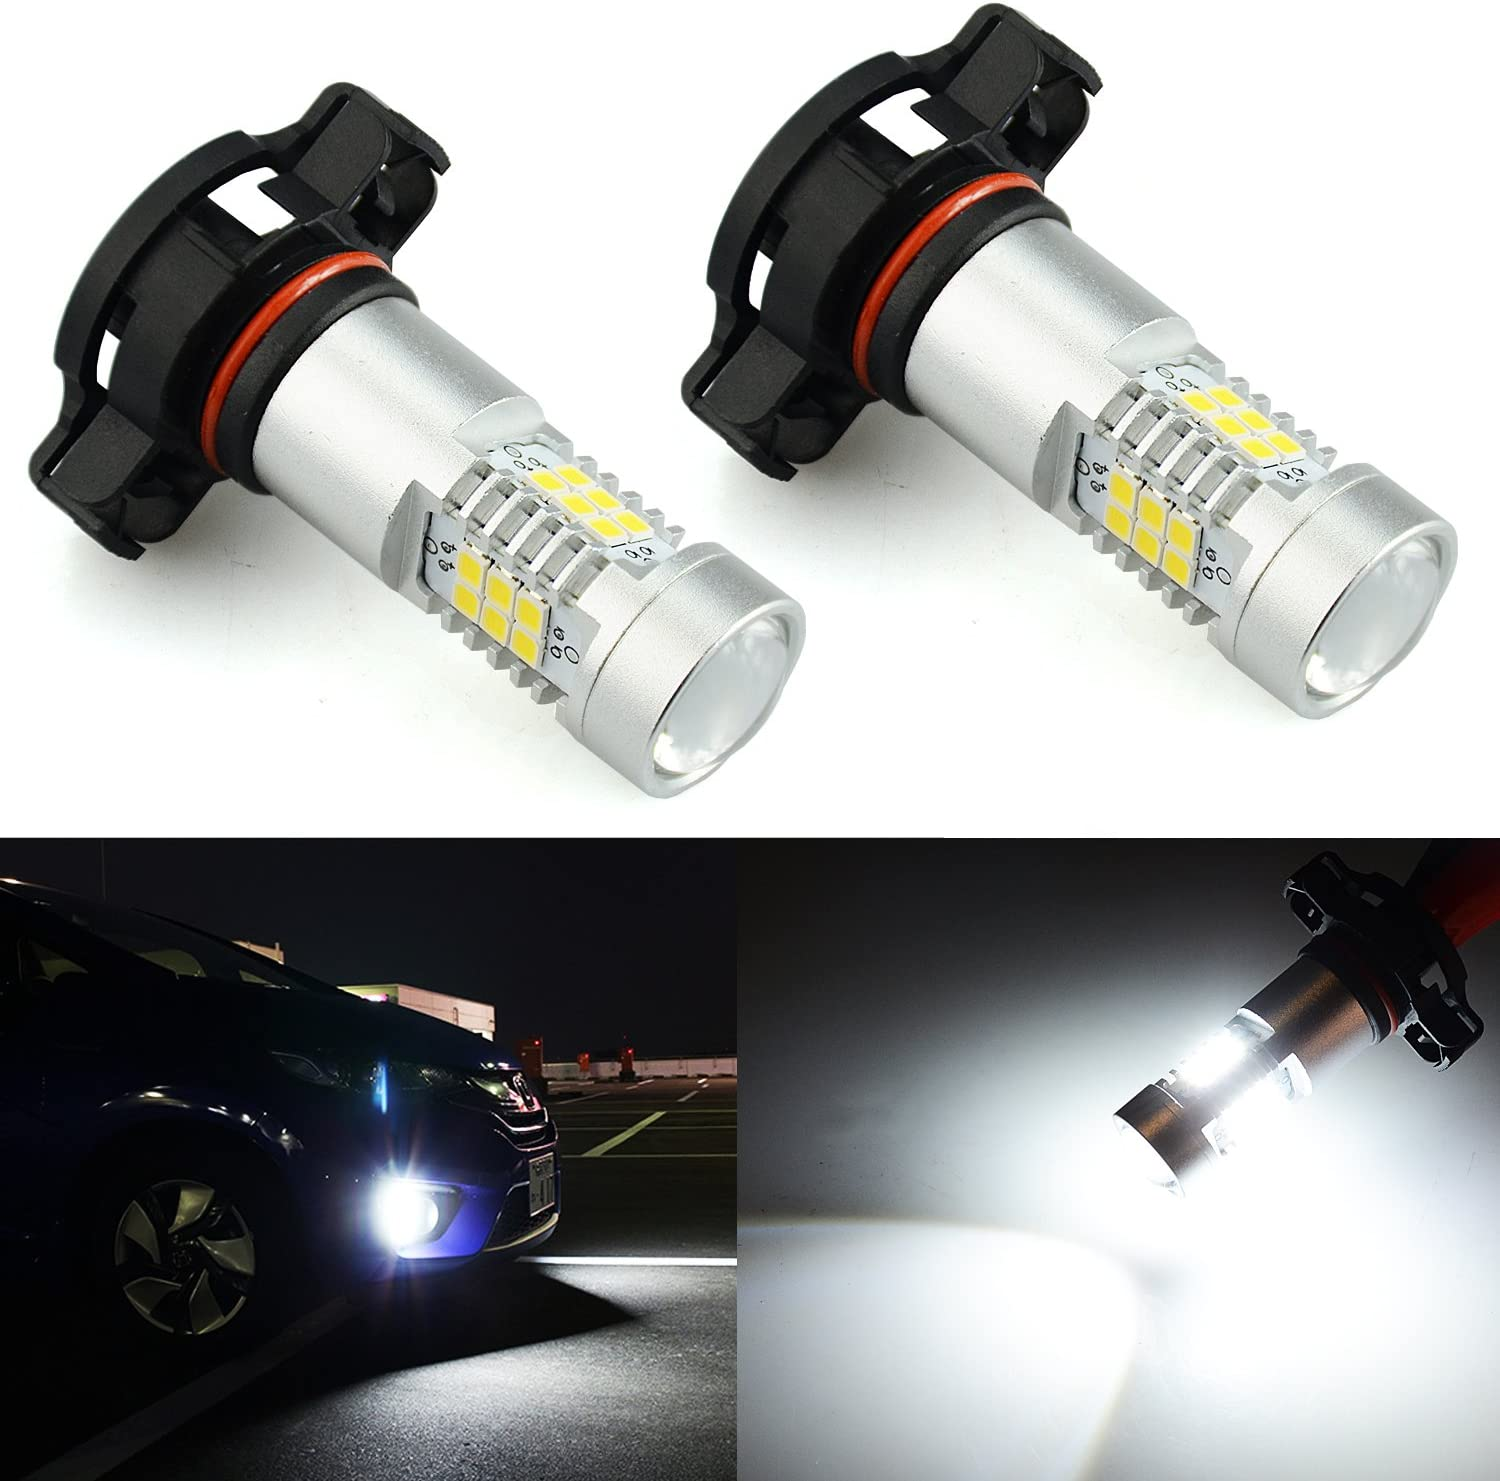 2504 Jdm Astar 2520 Lumens Extremely Bright Px Chips 2504 Pxs24w Led Fog Light Bulbs With Projector For Drl Or Fog Lights Xenon White Sareg Com